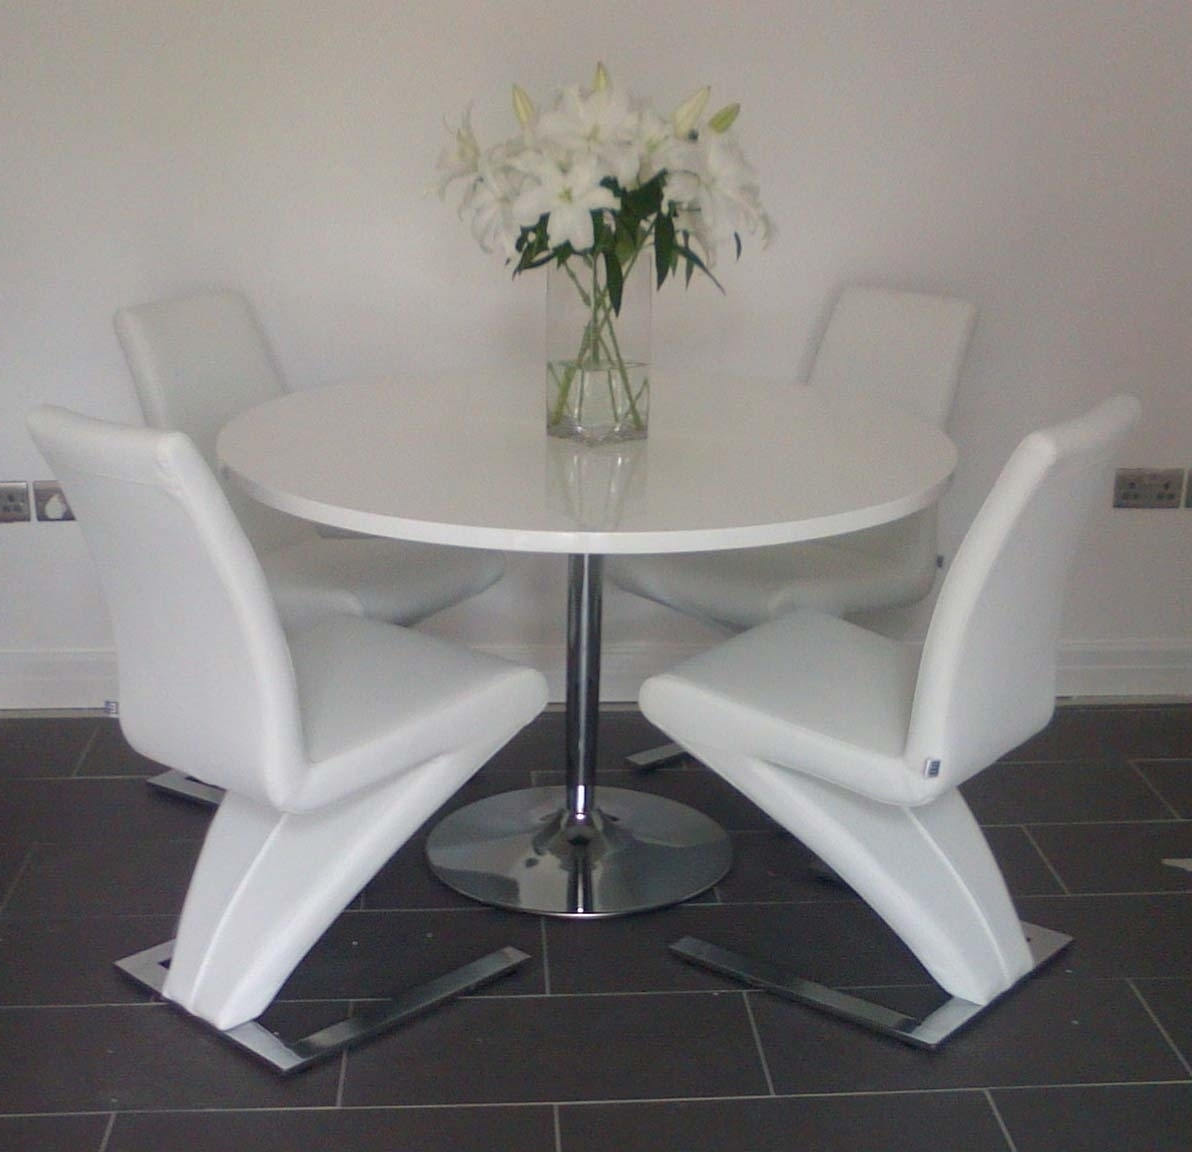 Becky Round White High Gloss Dining Table 120Cm Discontinued For Pertaining To Most Recent Round High Gloss Dining Tables (View 2 of 25)